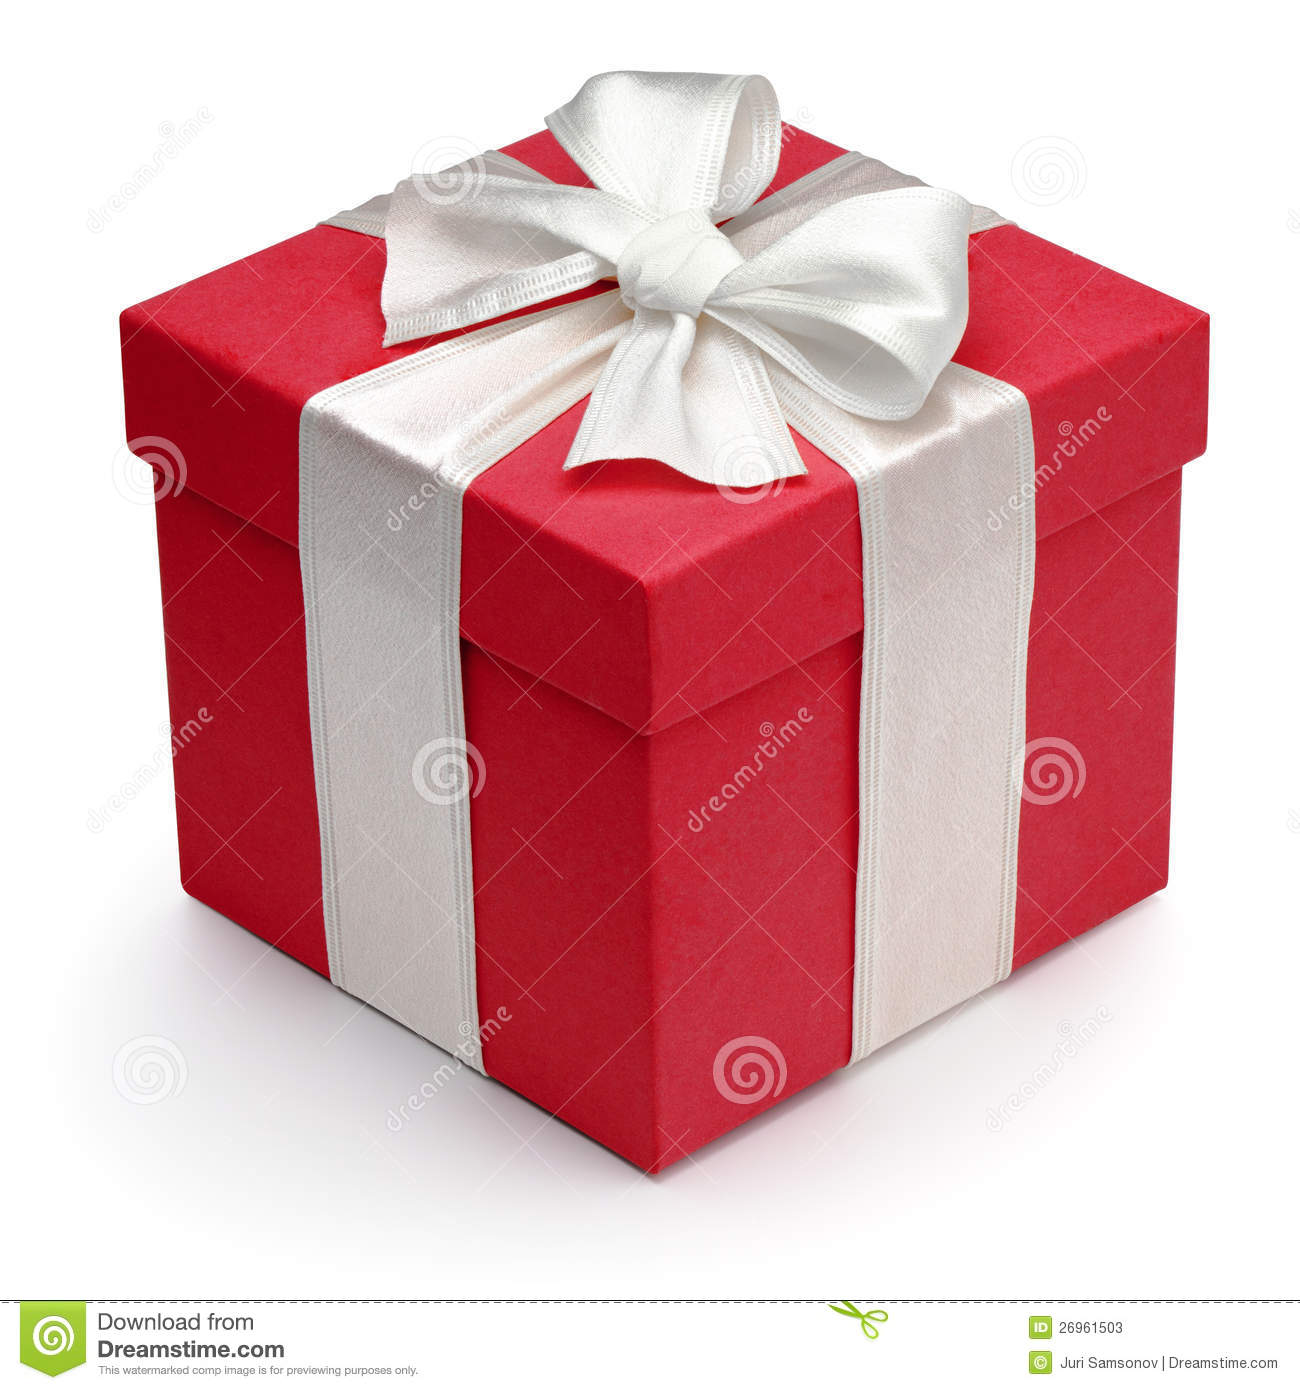 Image result for red box white bow